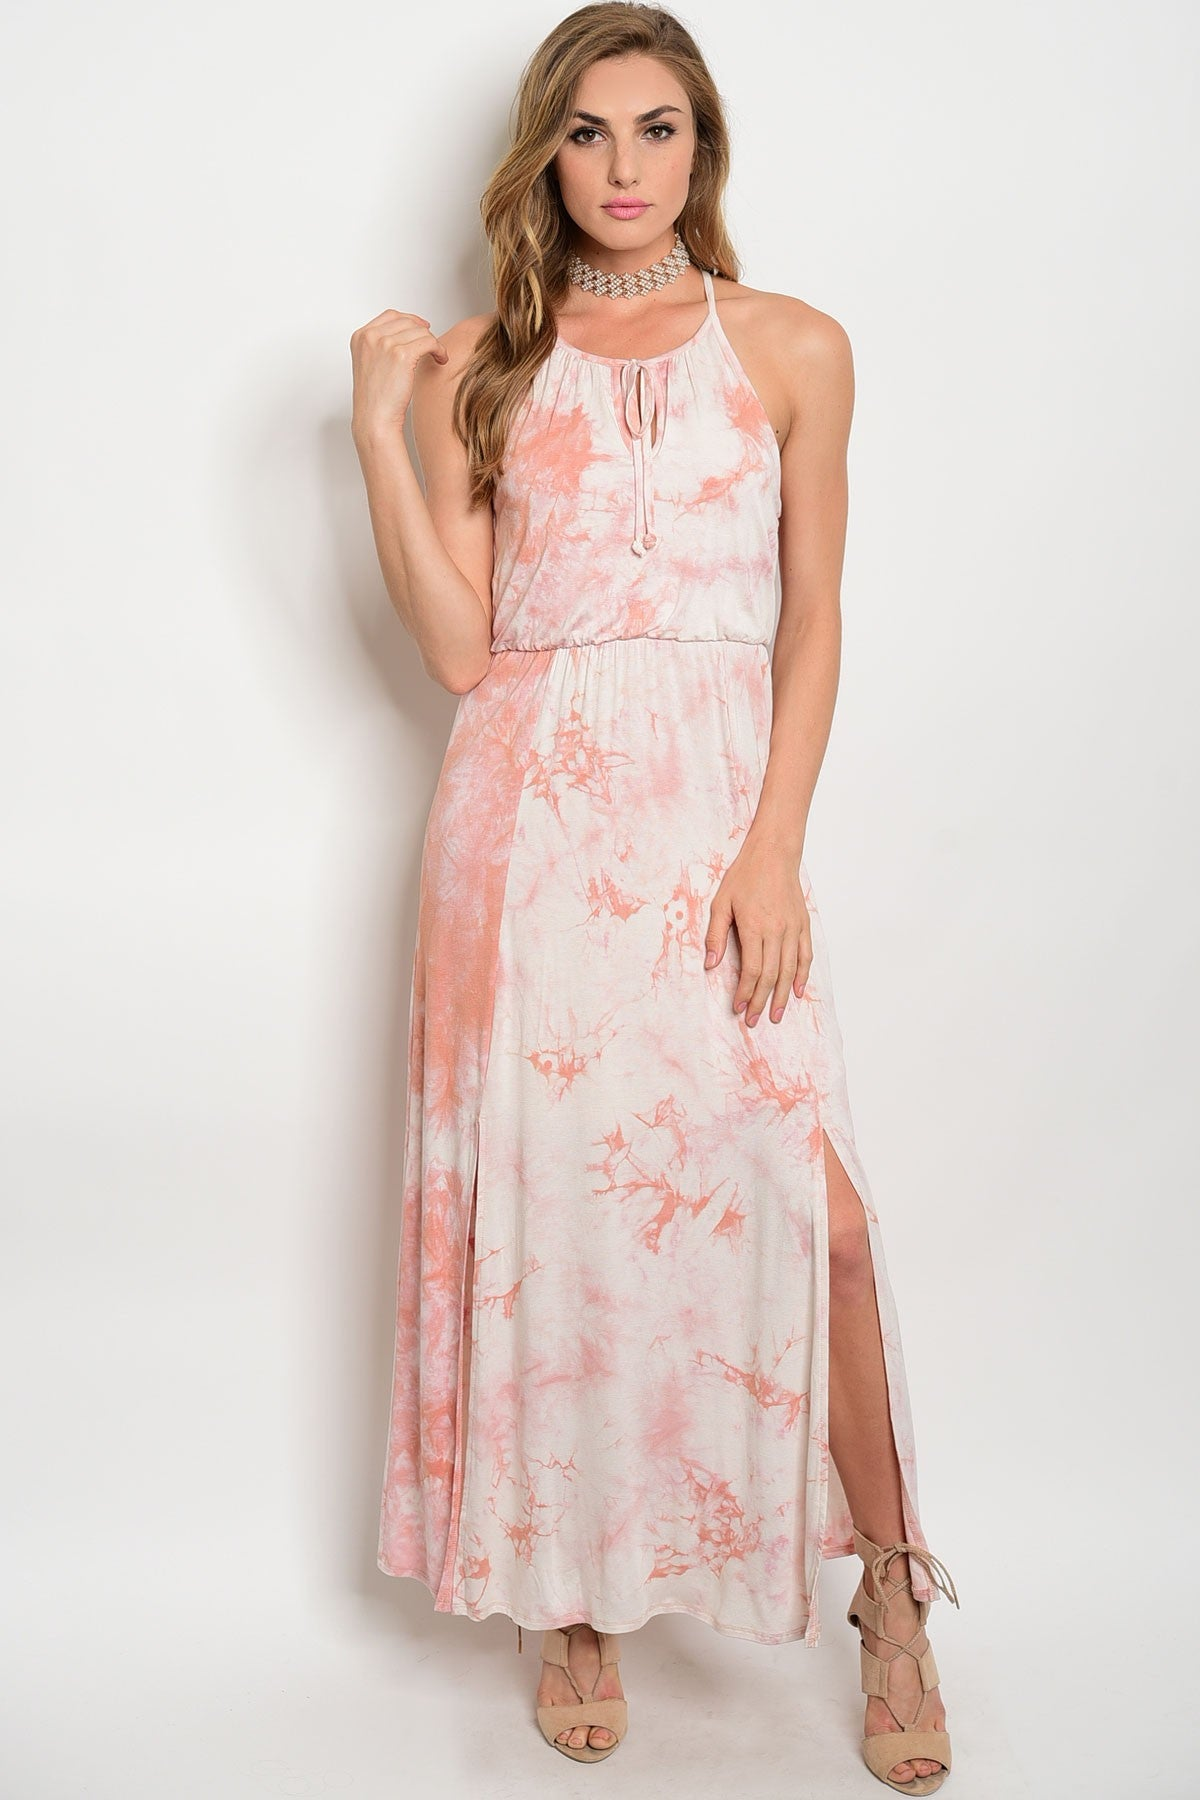 Pink Cloud Tie Dye Maxi Dress